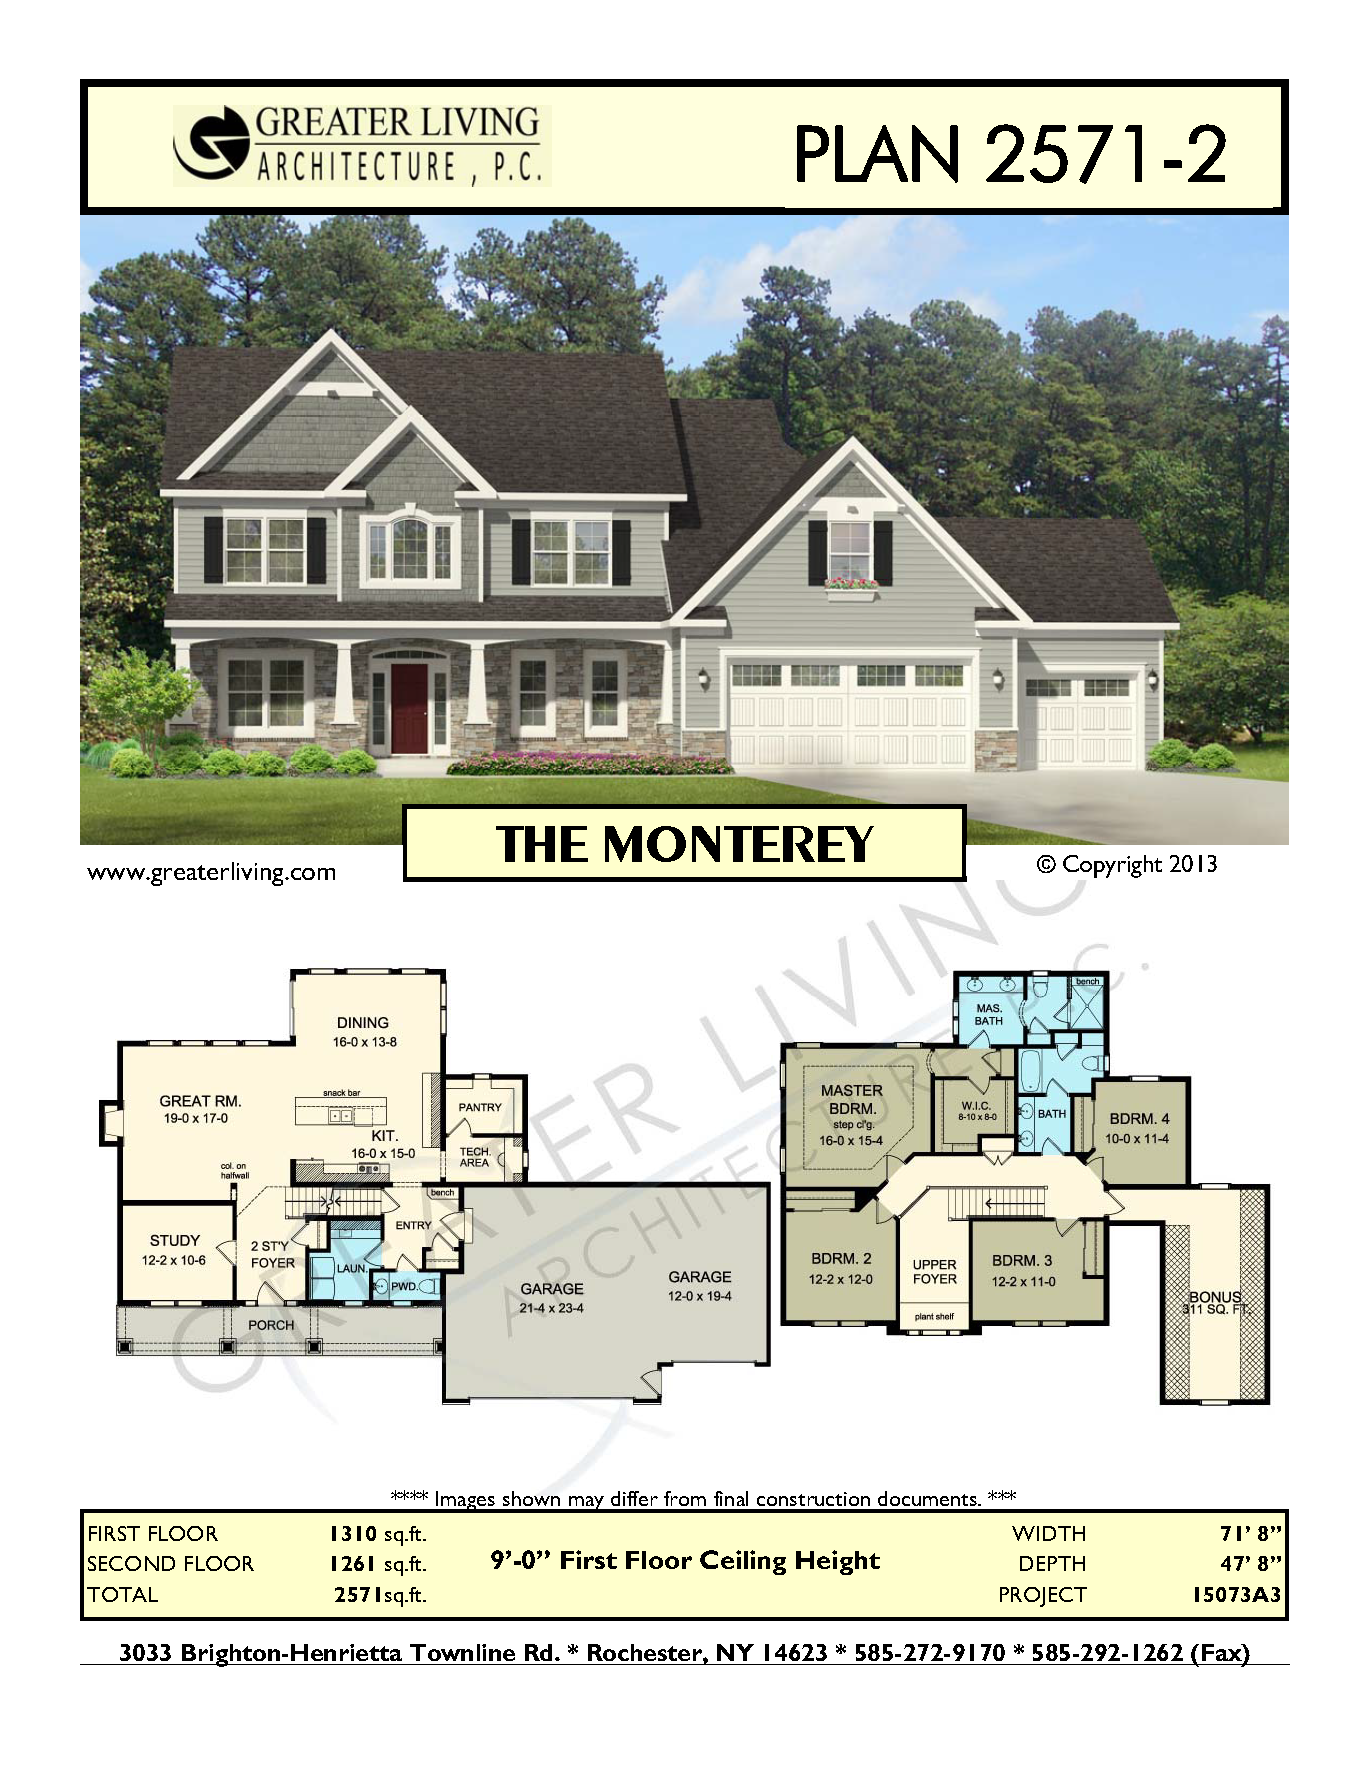 Plan 2571-2: THE MONTEREY